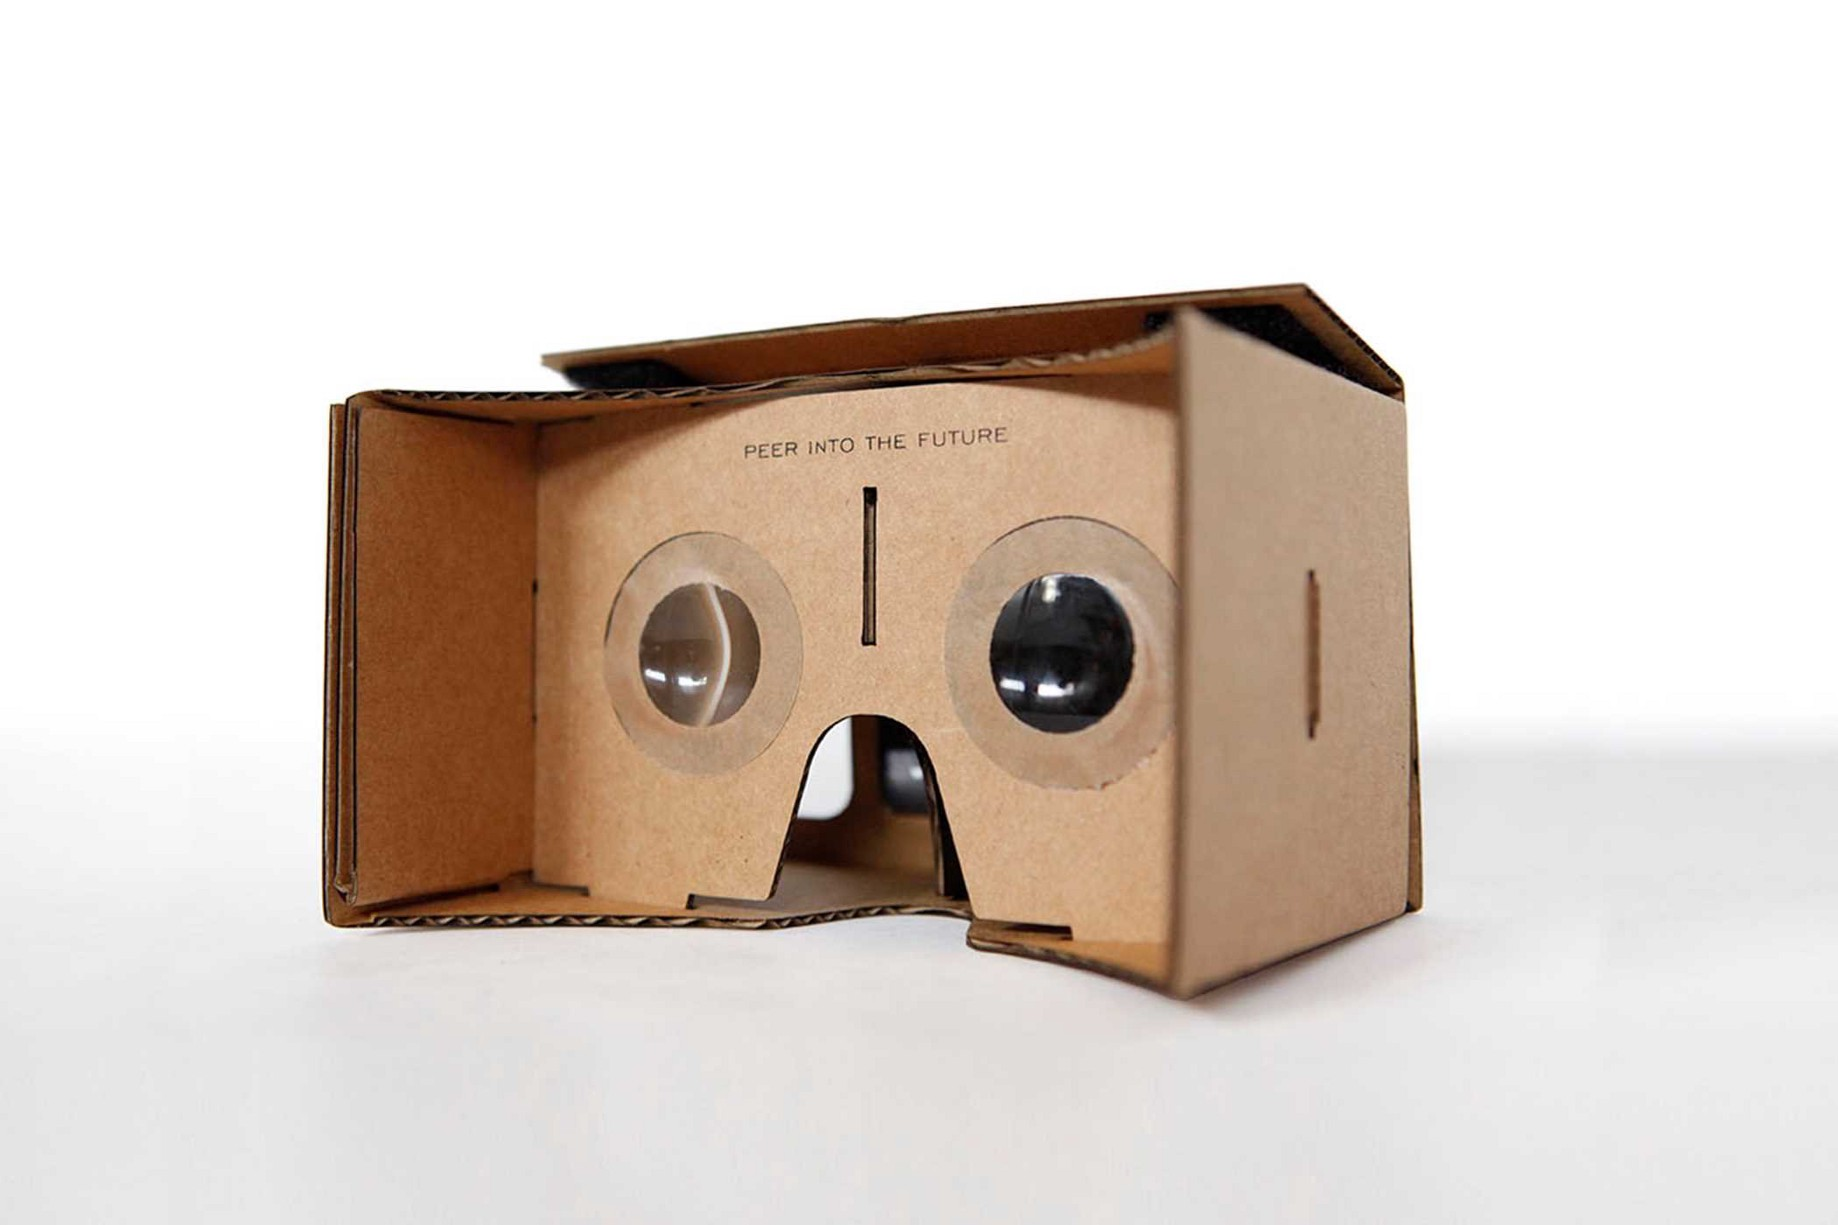 Google Cardboard and the VR First-Timer - Adventures in Consumer